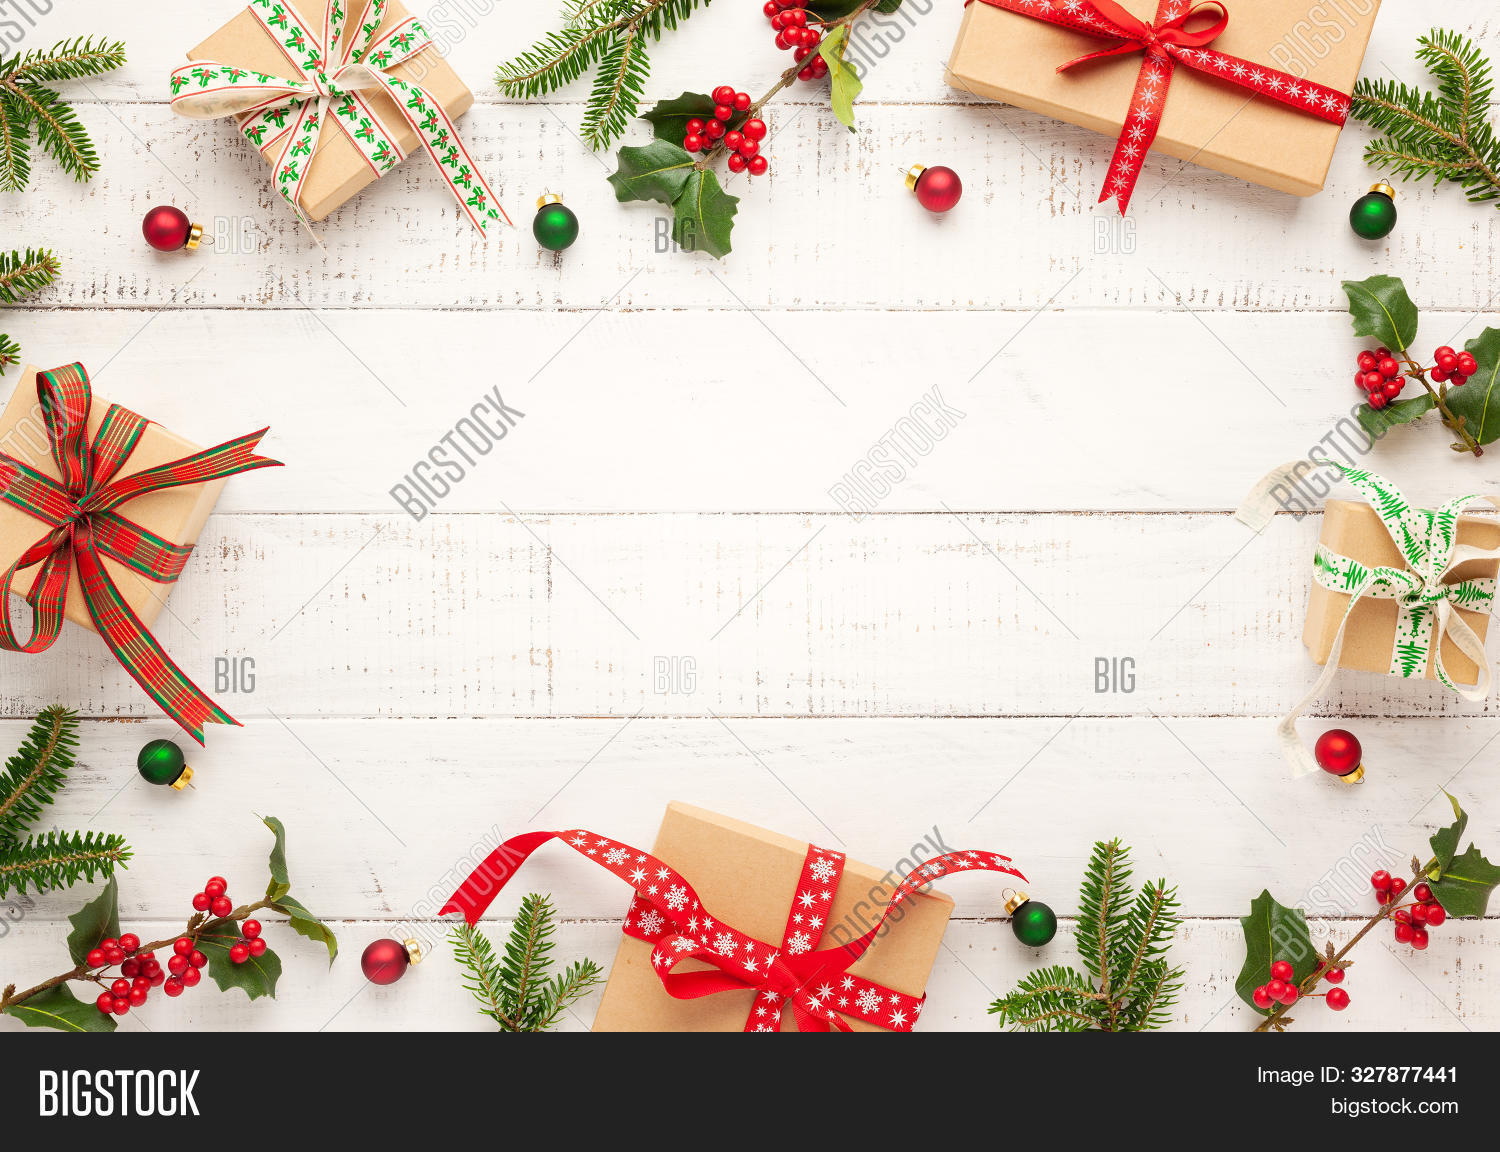 Christmas background with gift boxes, Christmas decorations and branches of holly and fir on white wooden background. Winter festive concept. Flat lay, copy space.